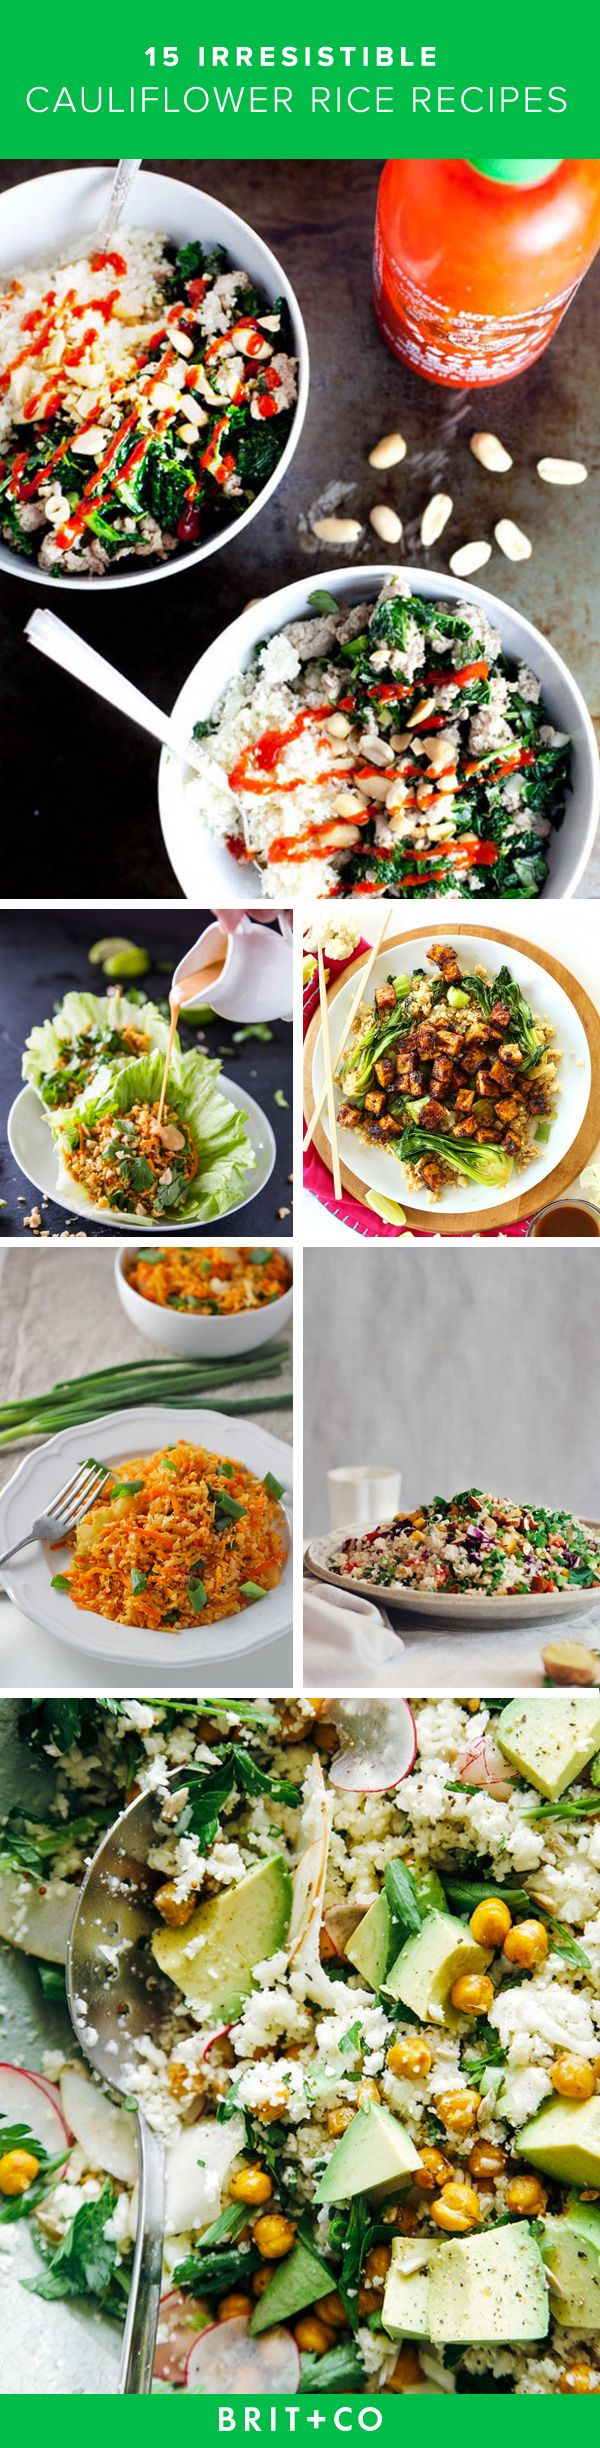 Save these cauliflower rice recipes to whip up for a healthy breakfast, lunch or dinner on any day of the week.